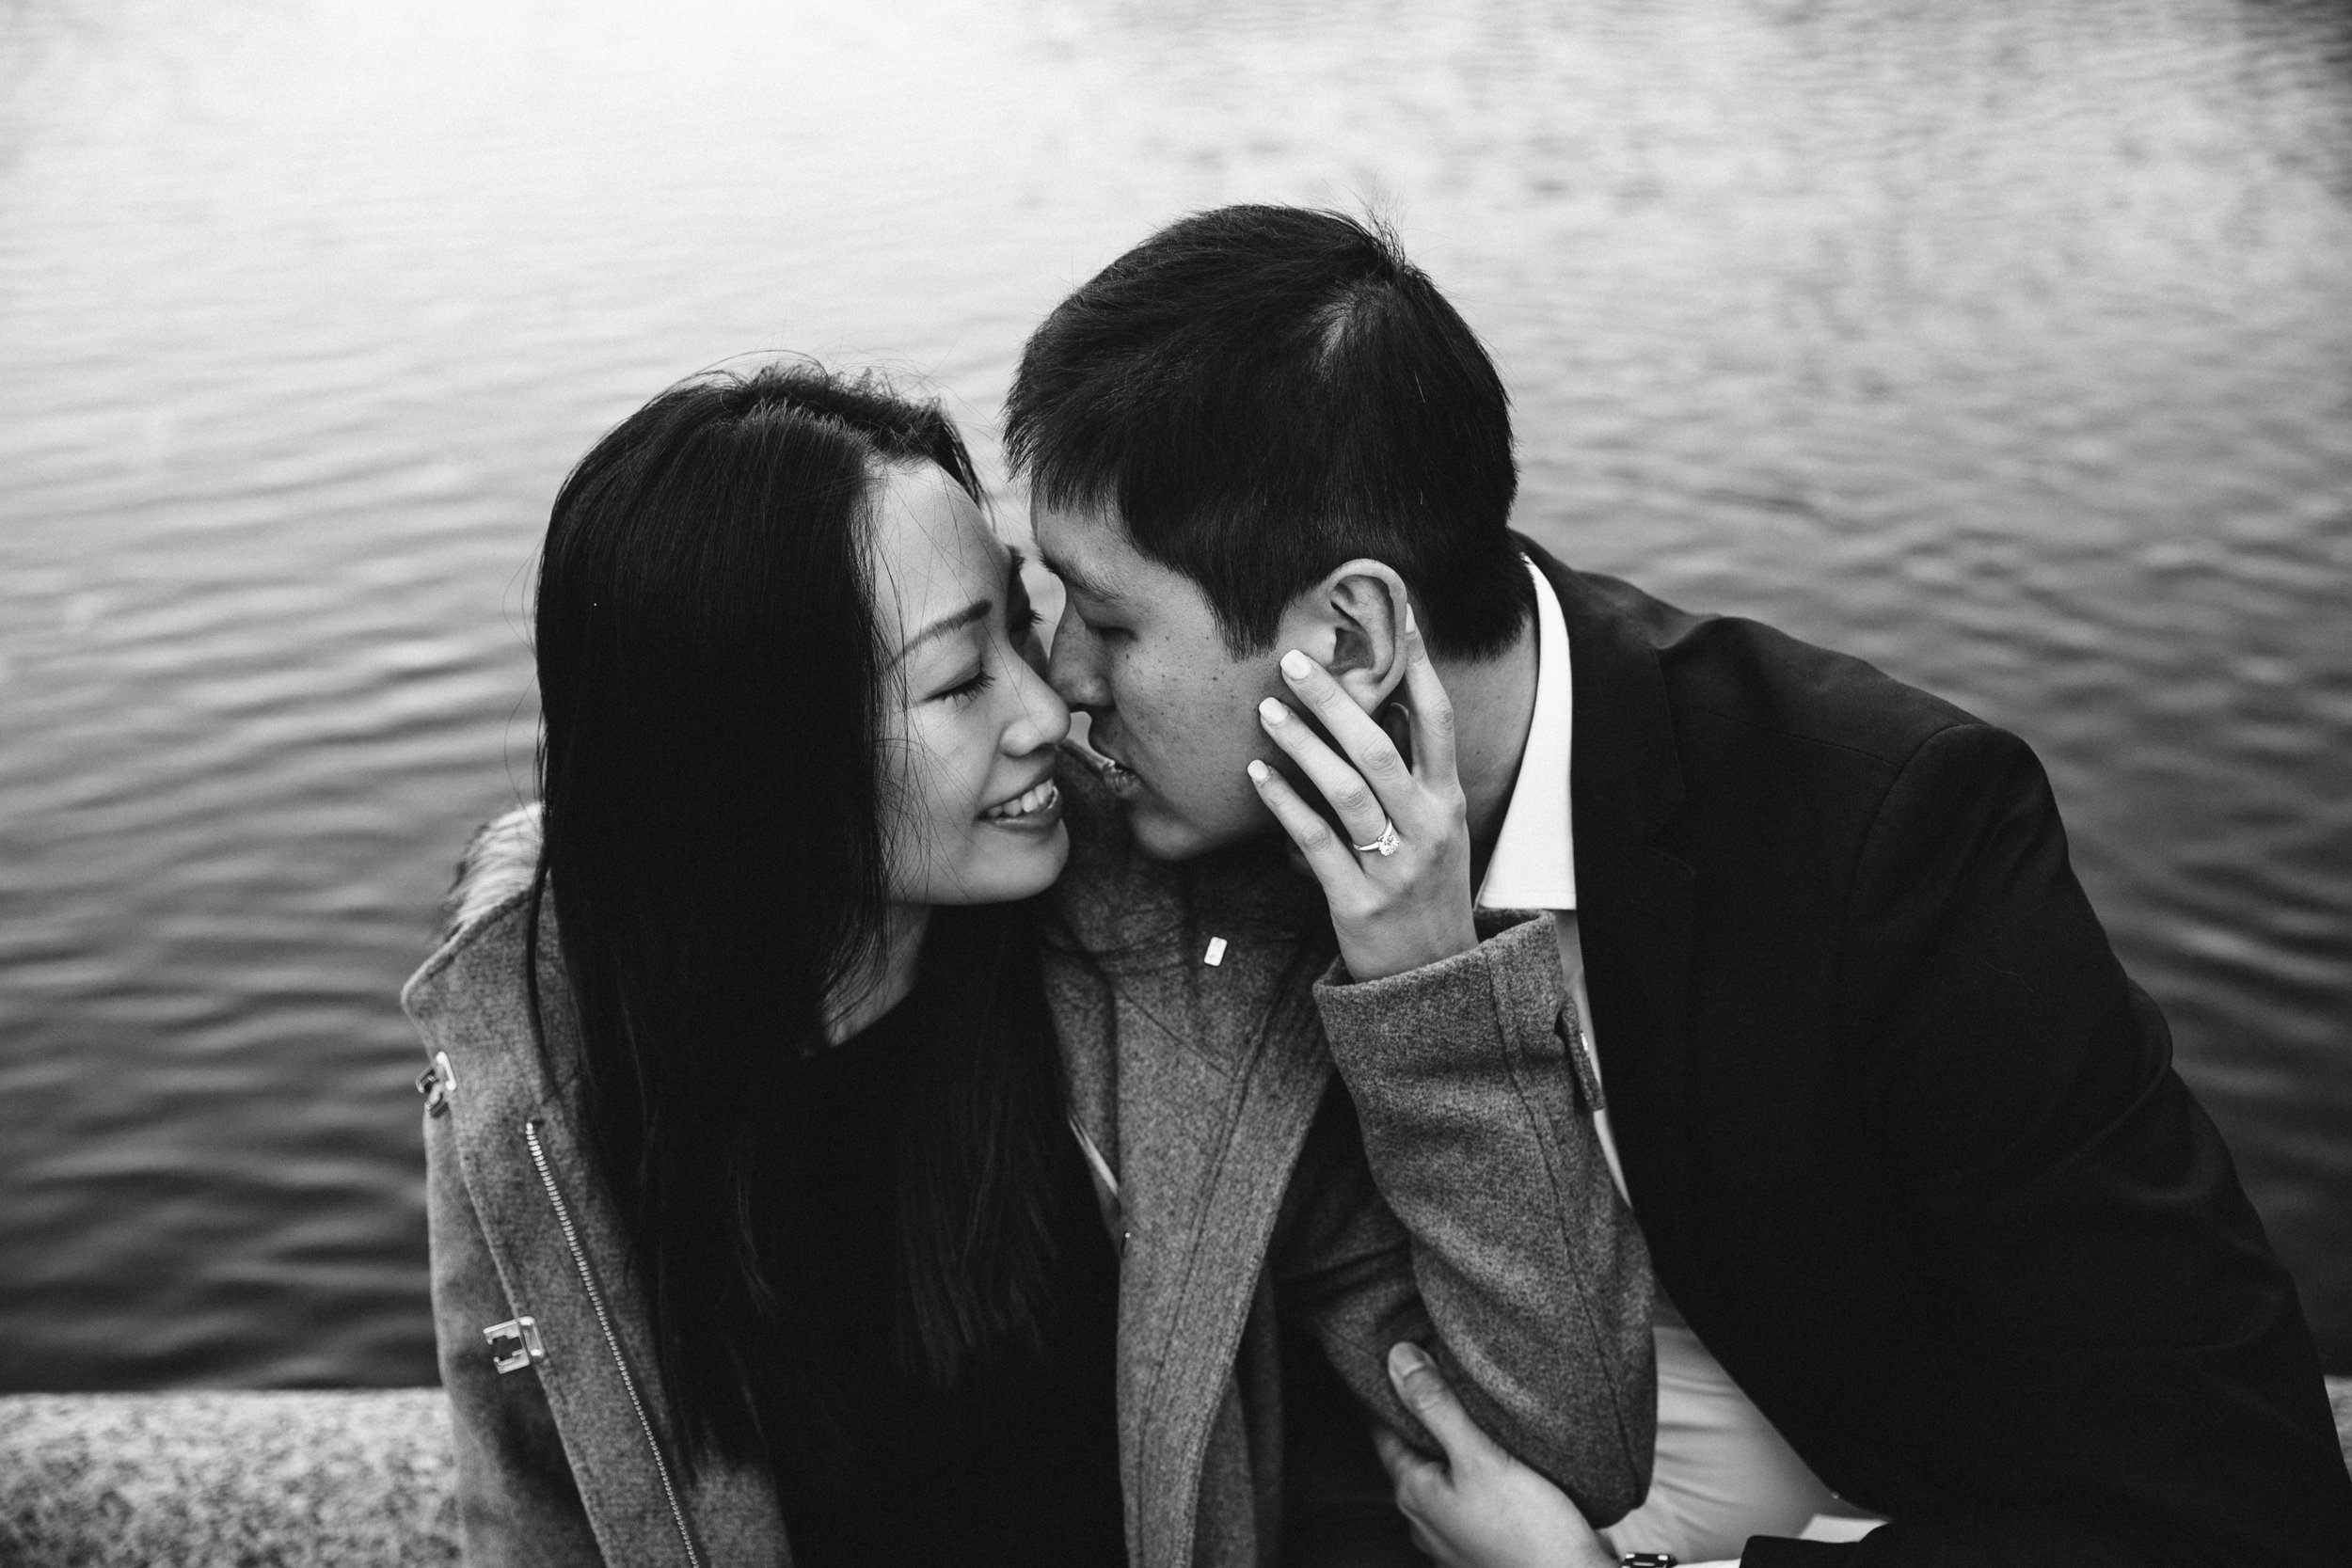 celestehernandez - nyc-central park engagement015.jpg